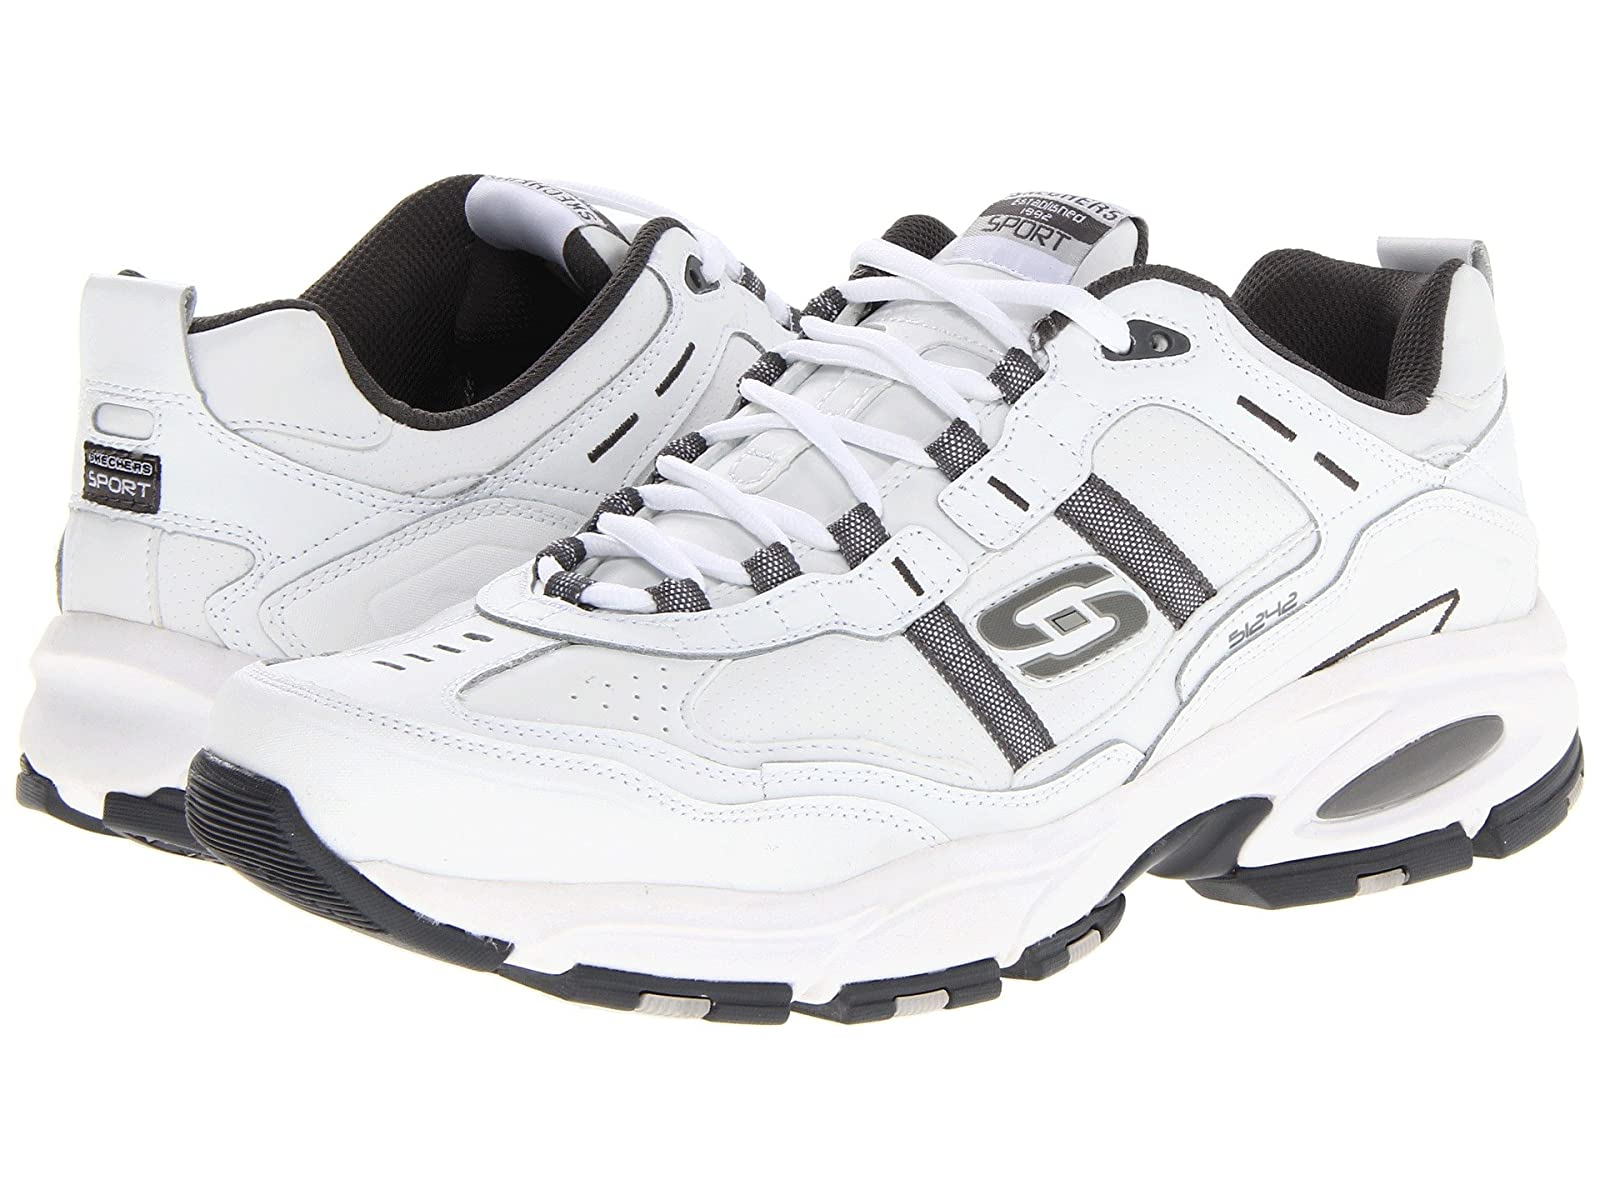 SKECHERS Vigor 2.0 SerpentineCheap and distinctive eye-catching shoes